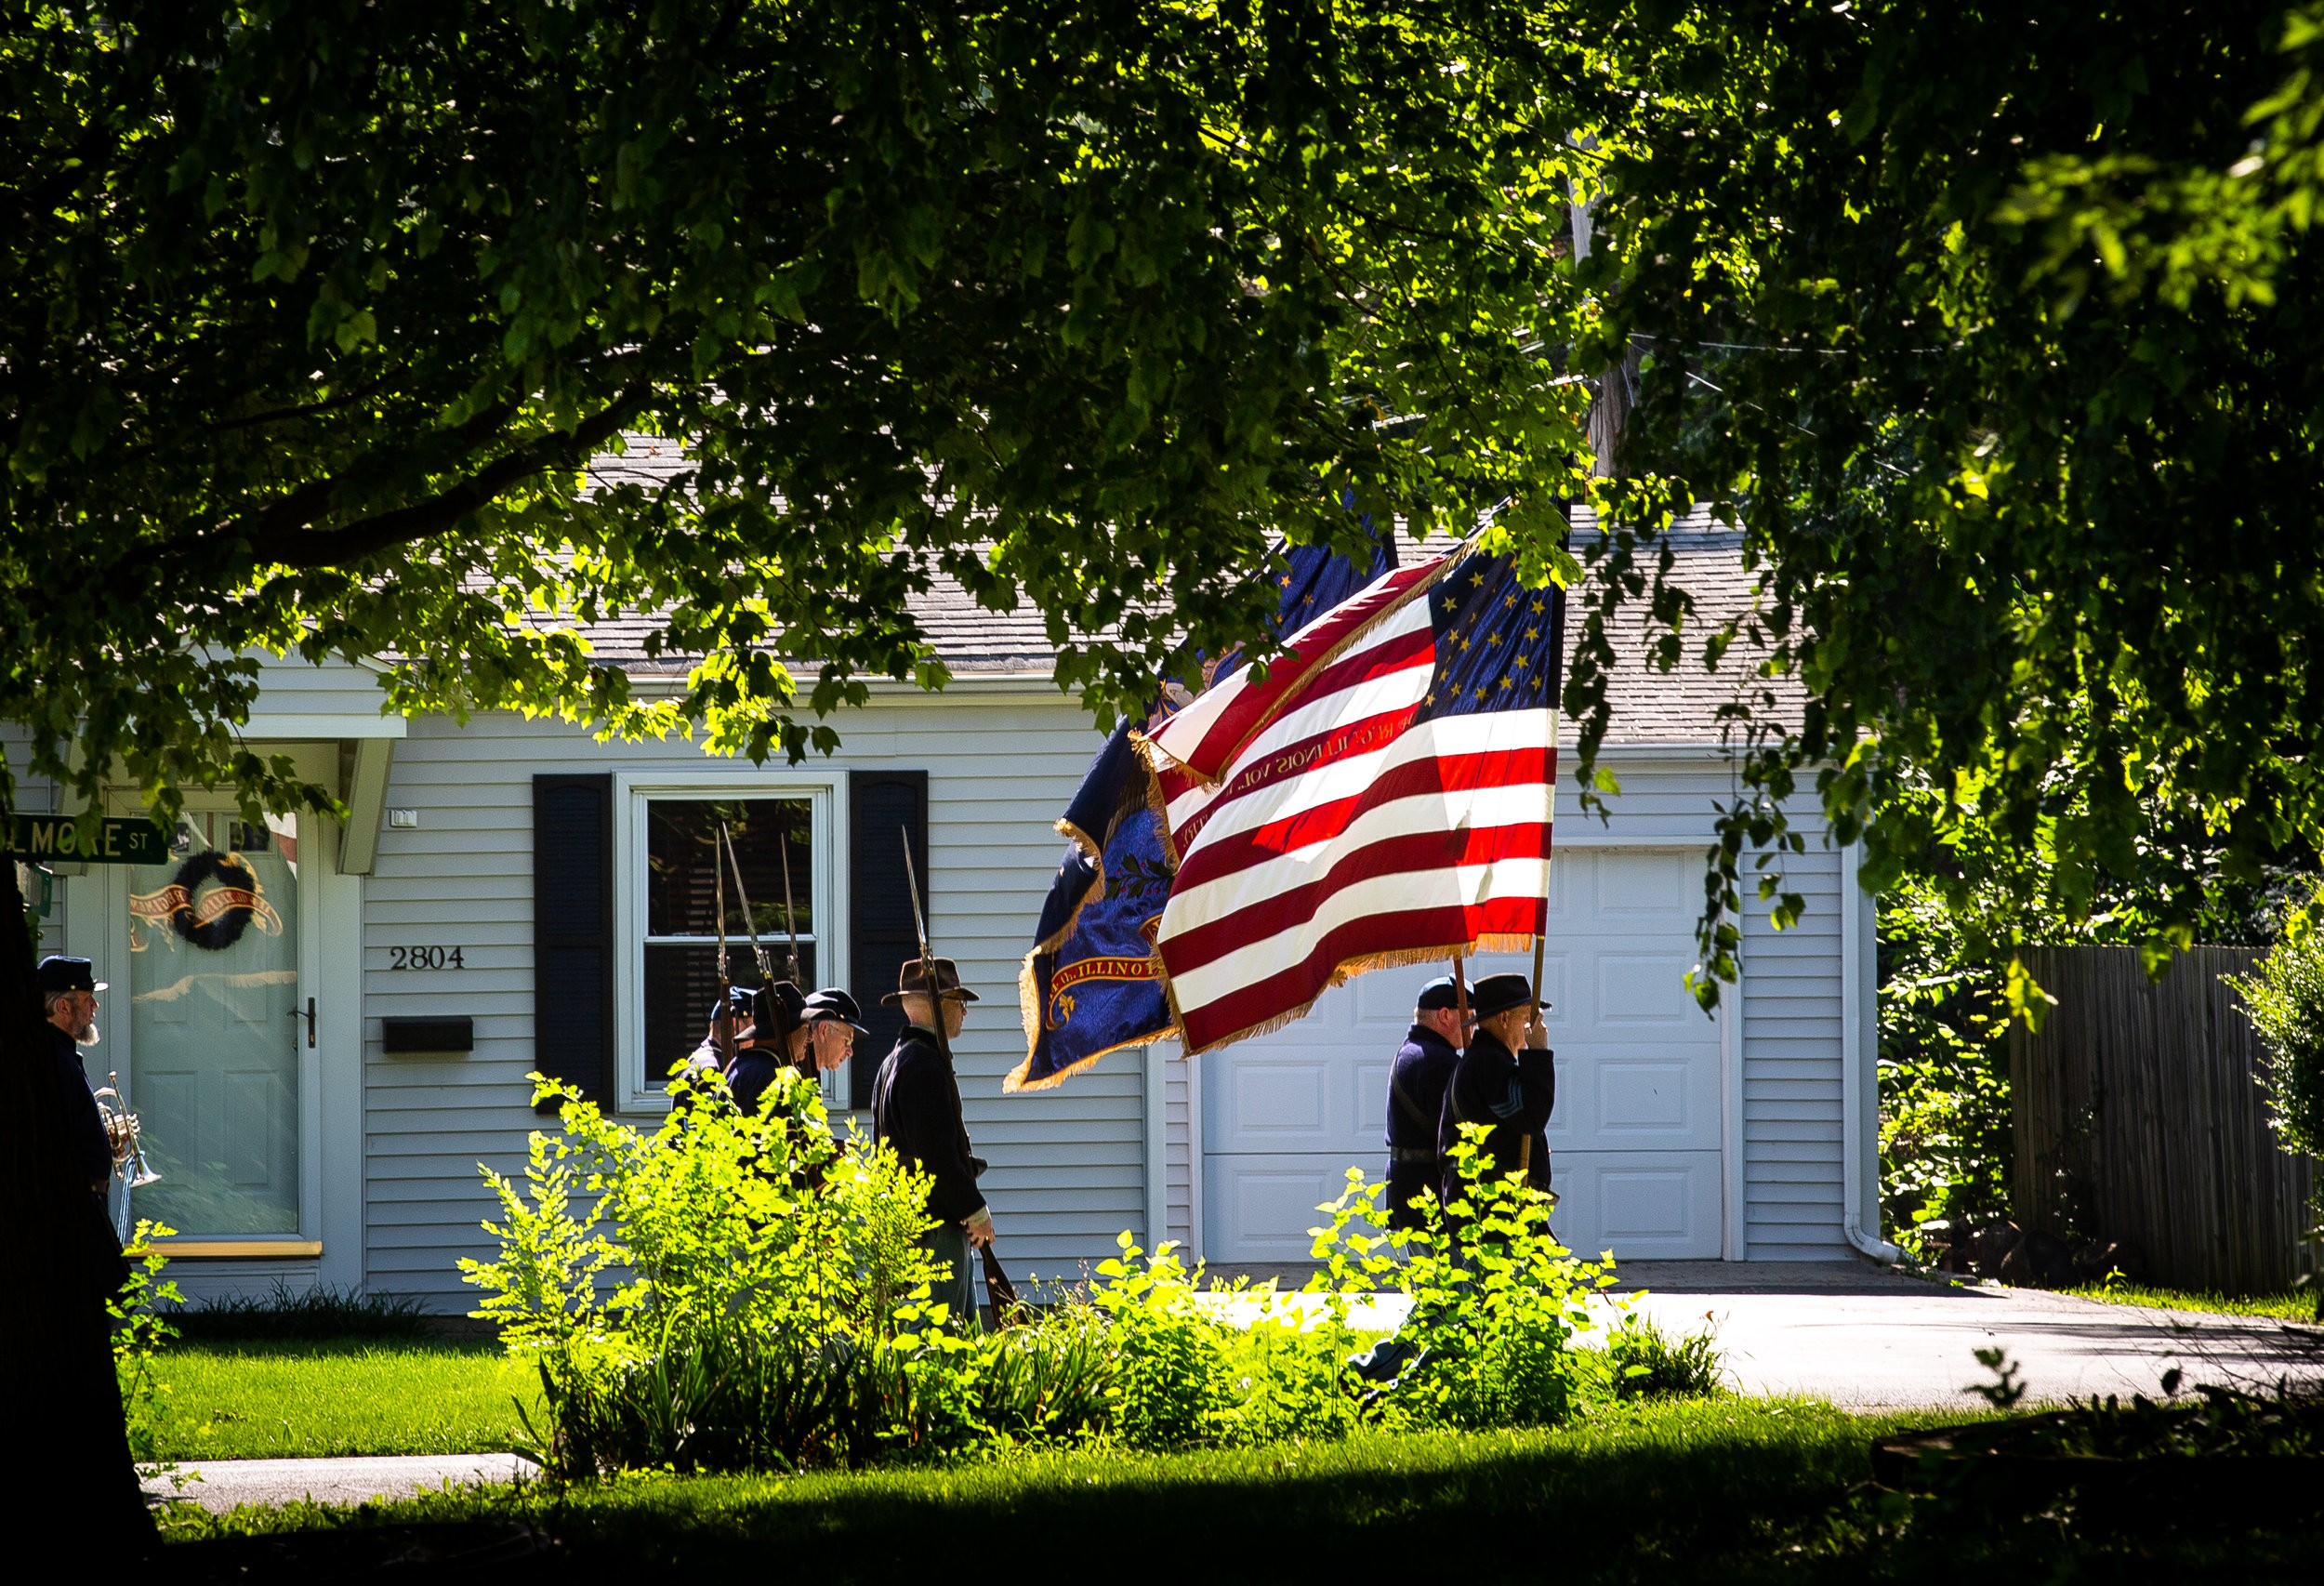 The 114th Illinois Infantry Regiment makes it way up Fillmore Street in the Village of Jerome's July 4th parade Wednesday, July 4, 2018 in Jerome, Ill. [Rich Saal/The State Journal-Register]